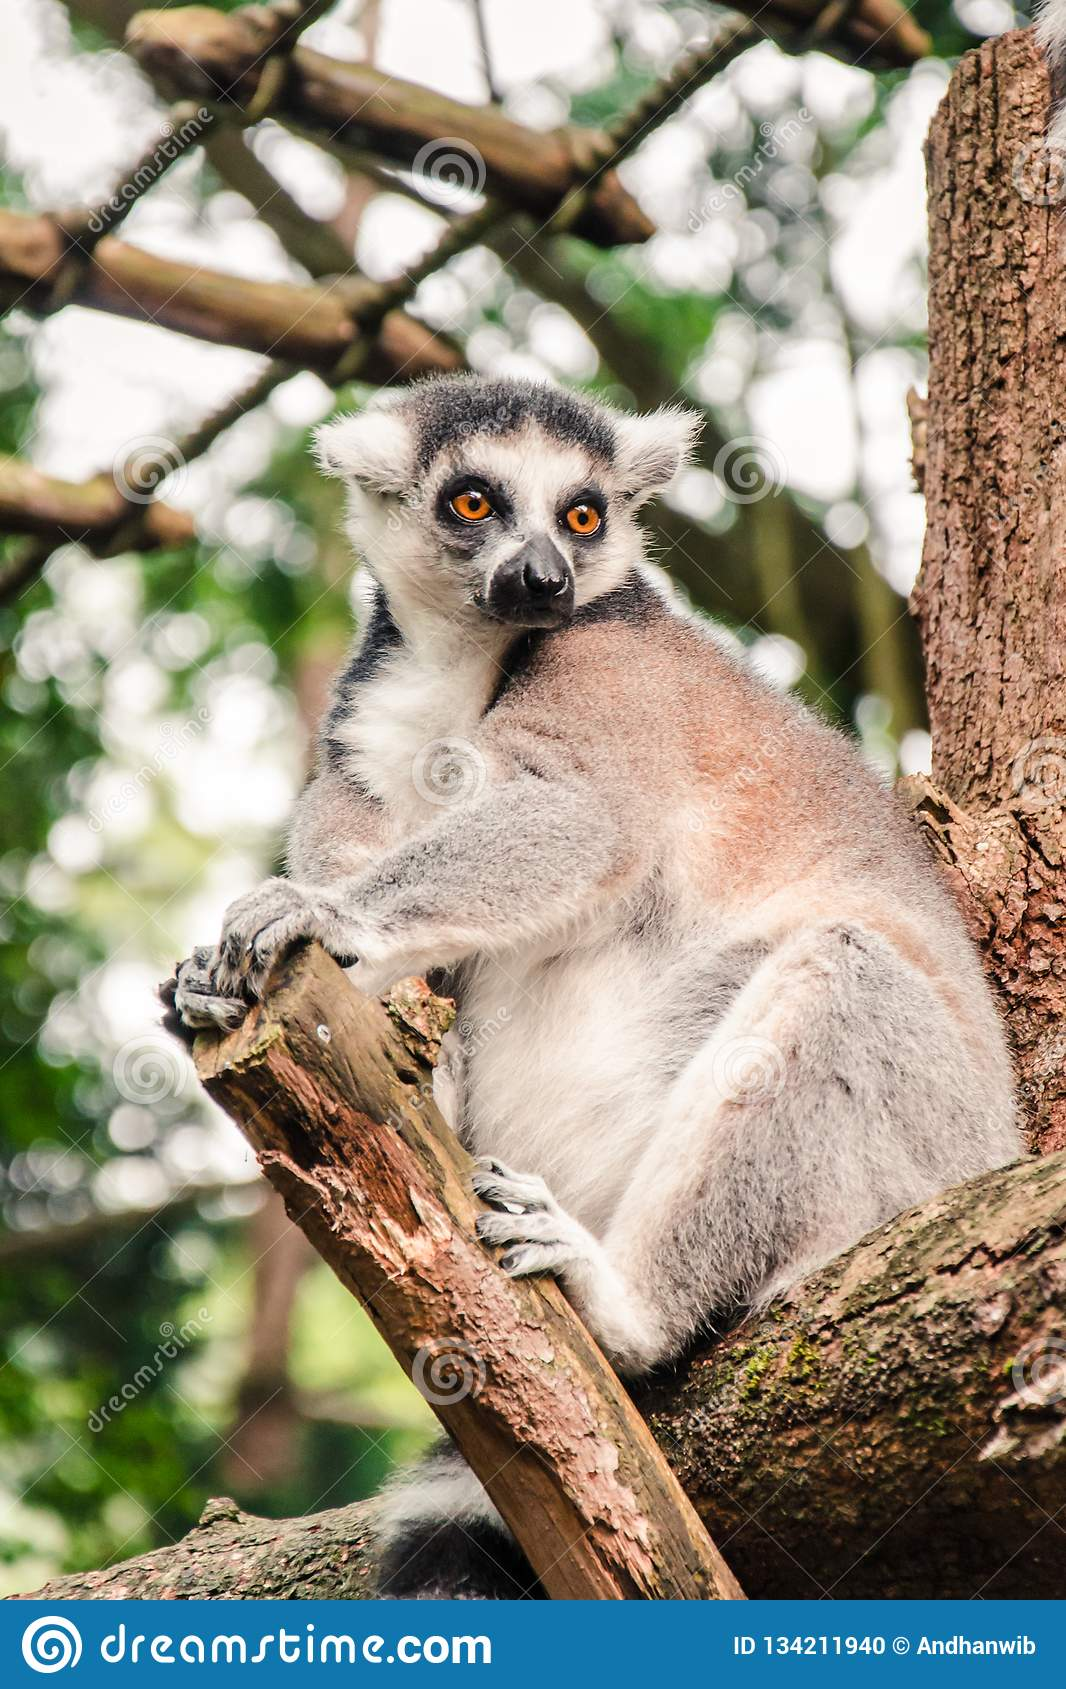 Close up of a Ring-tailed Lemur Relaxing on a Log